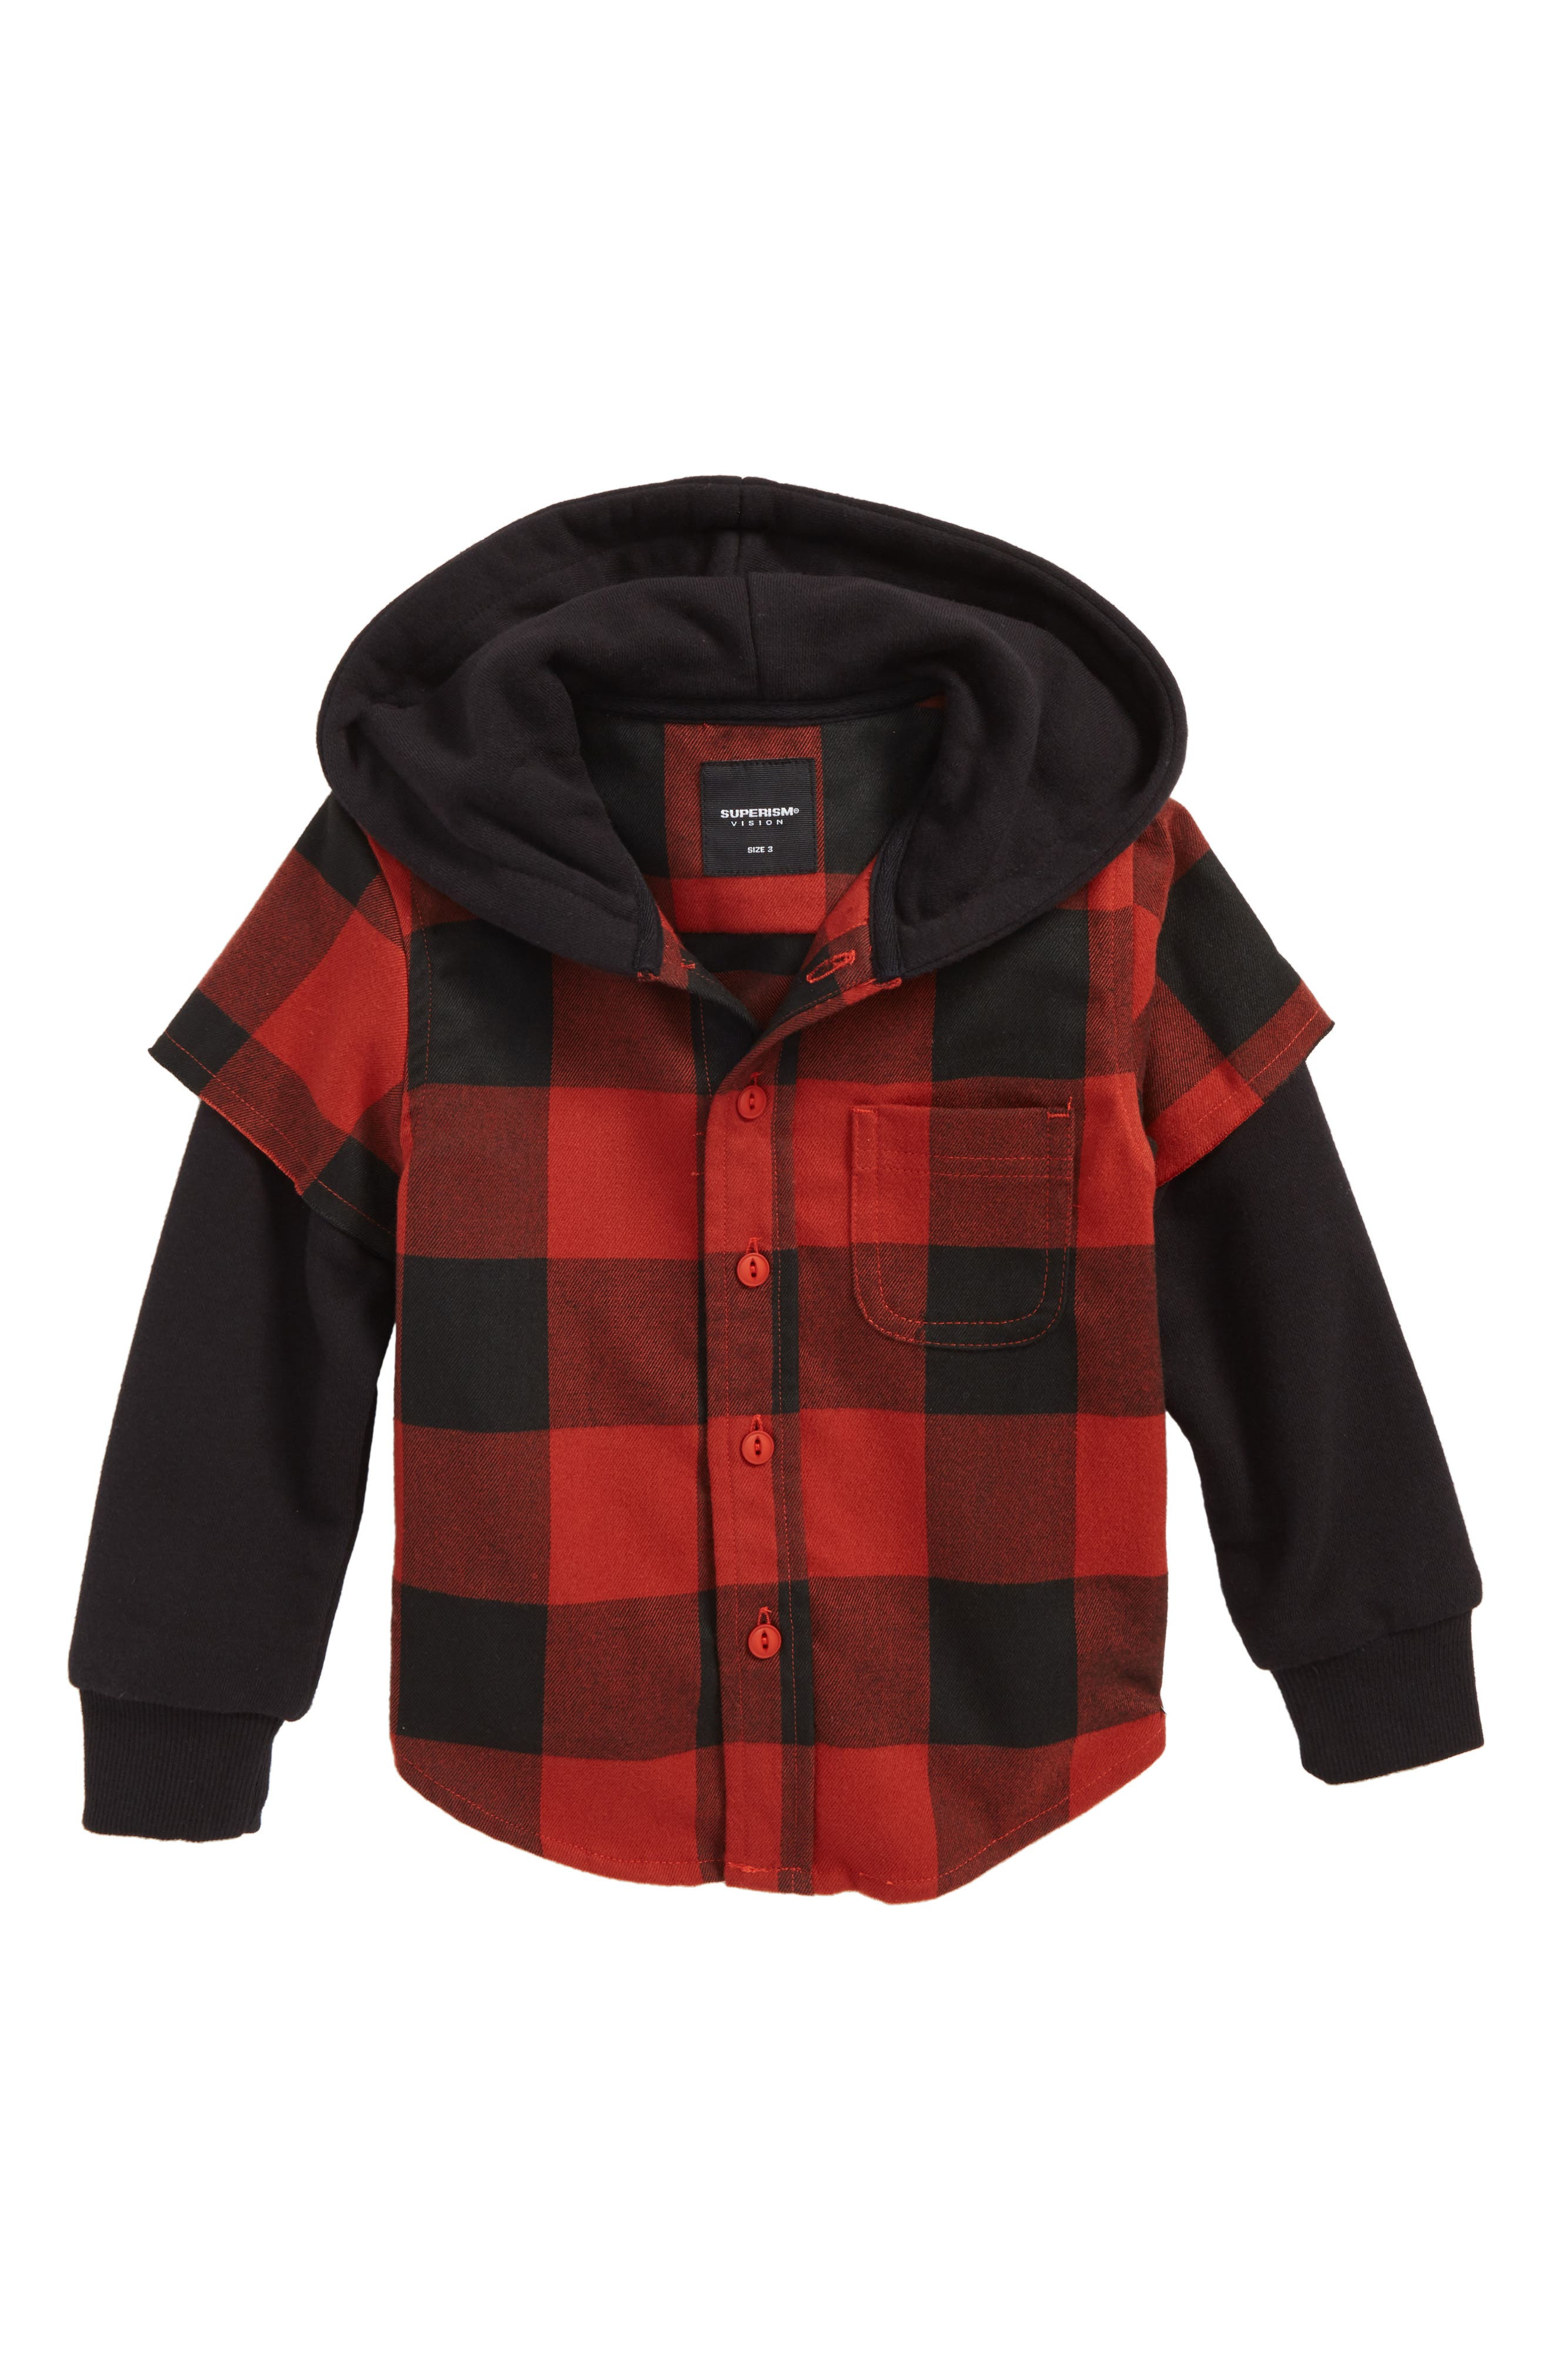 Main Image - Superism Rylan Check Hooded Shirt (Toddler Boys & Little Boys)